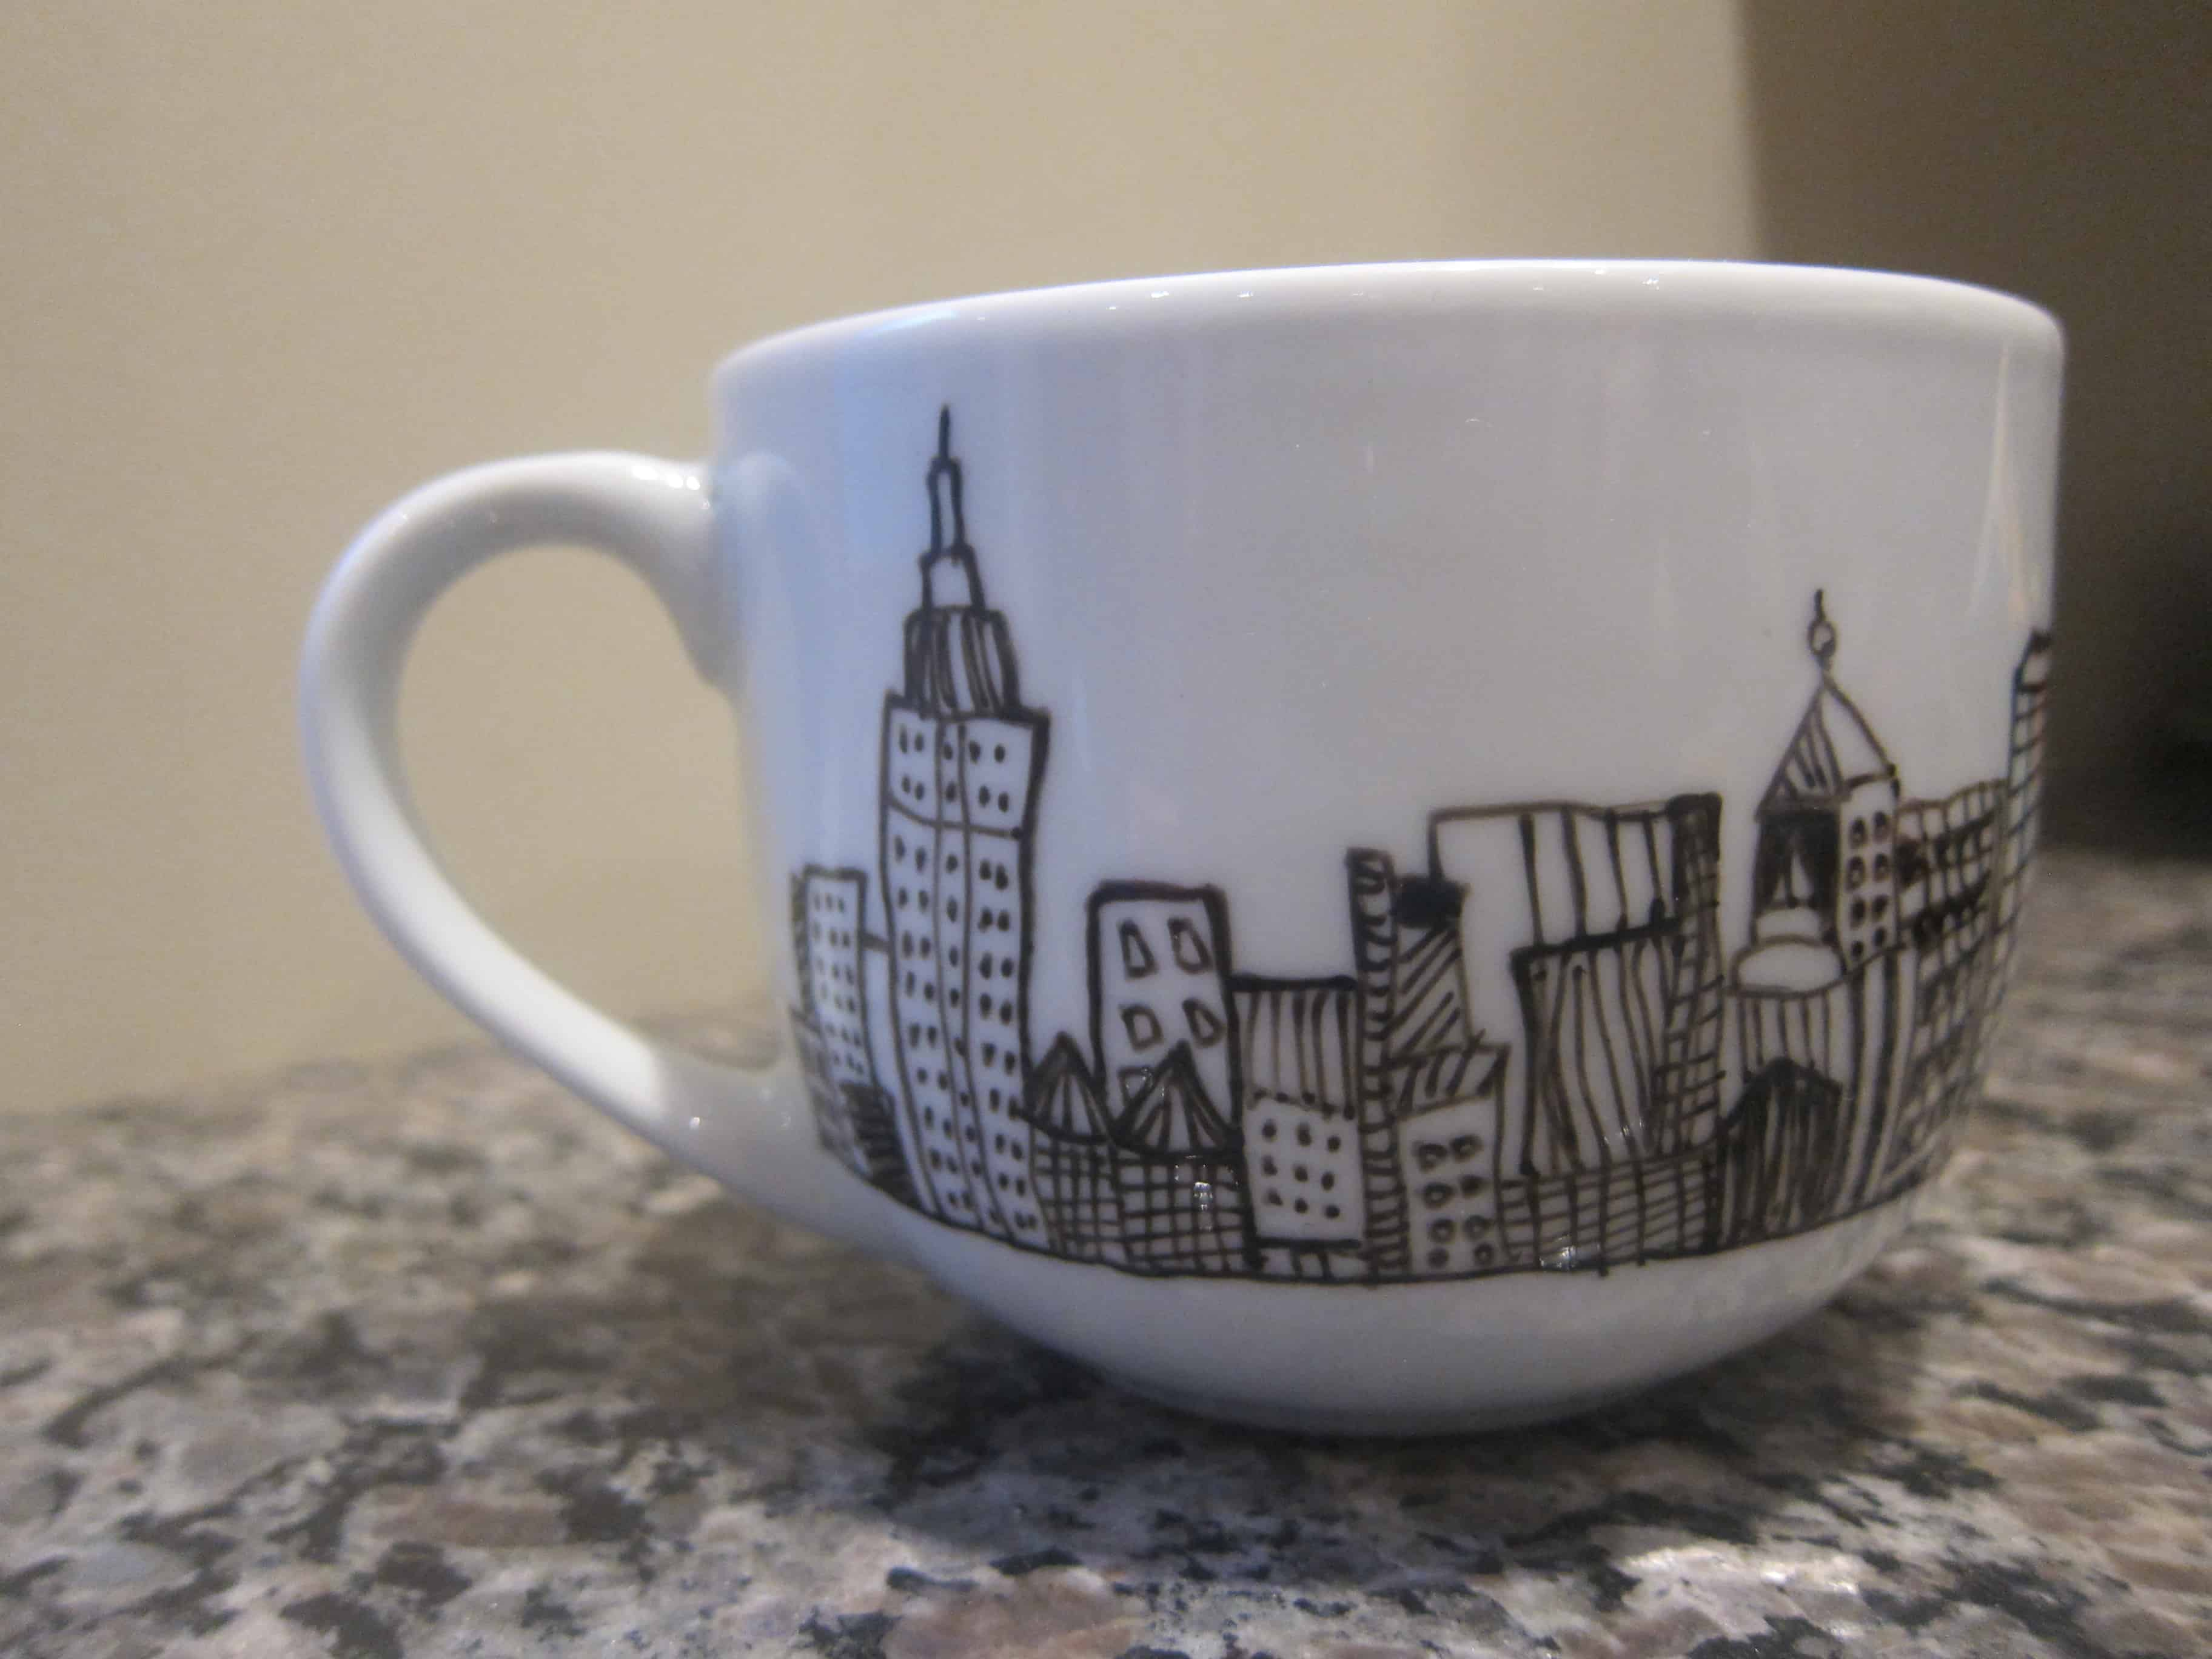 Paint pen sketches on mugs